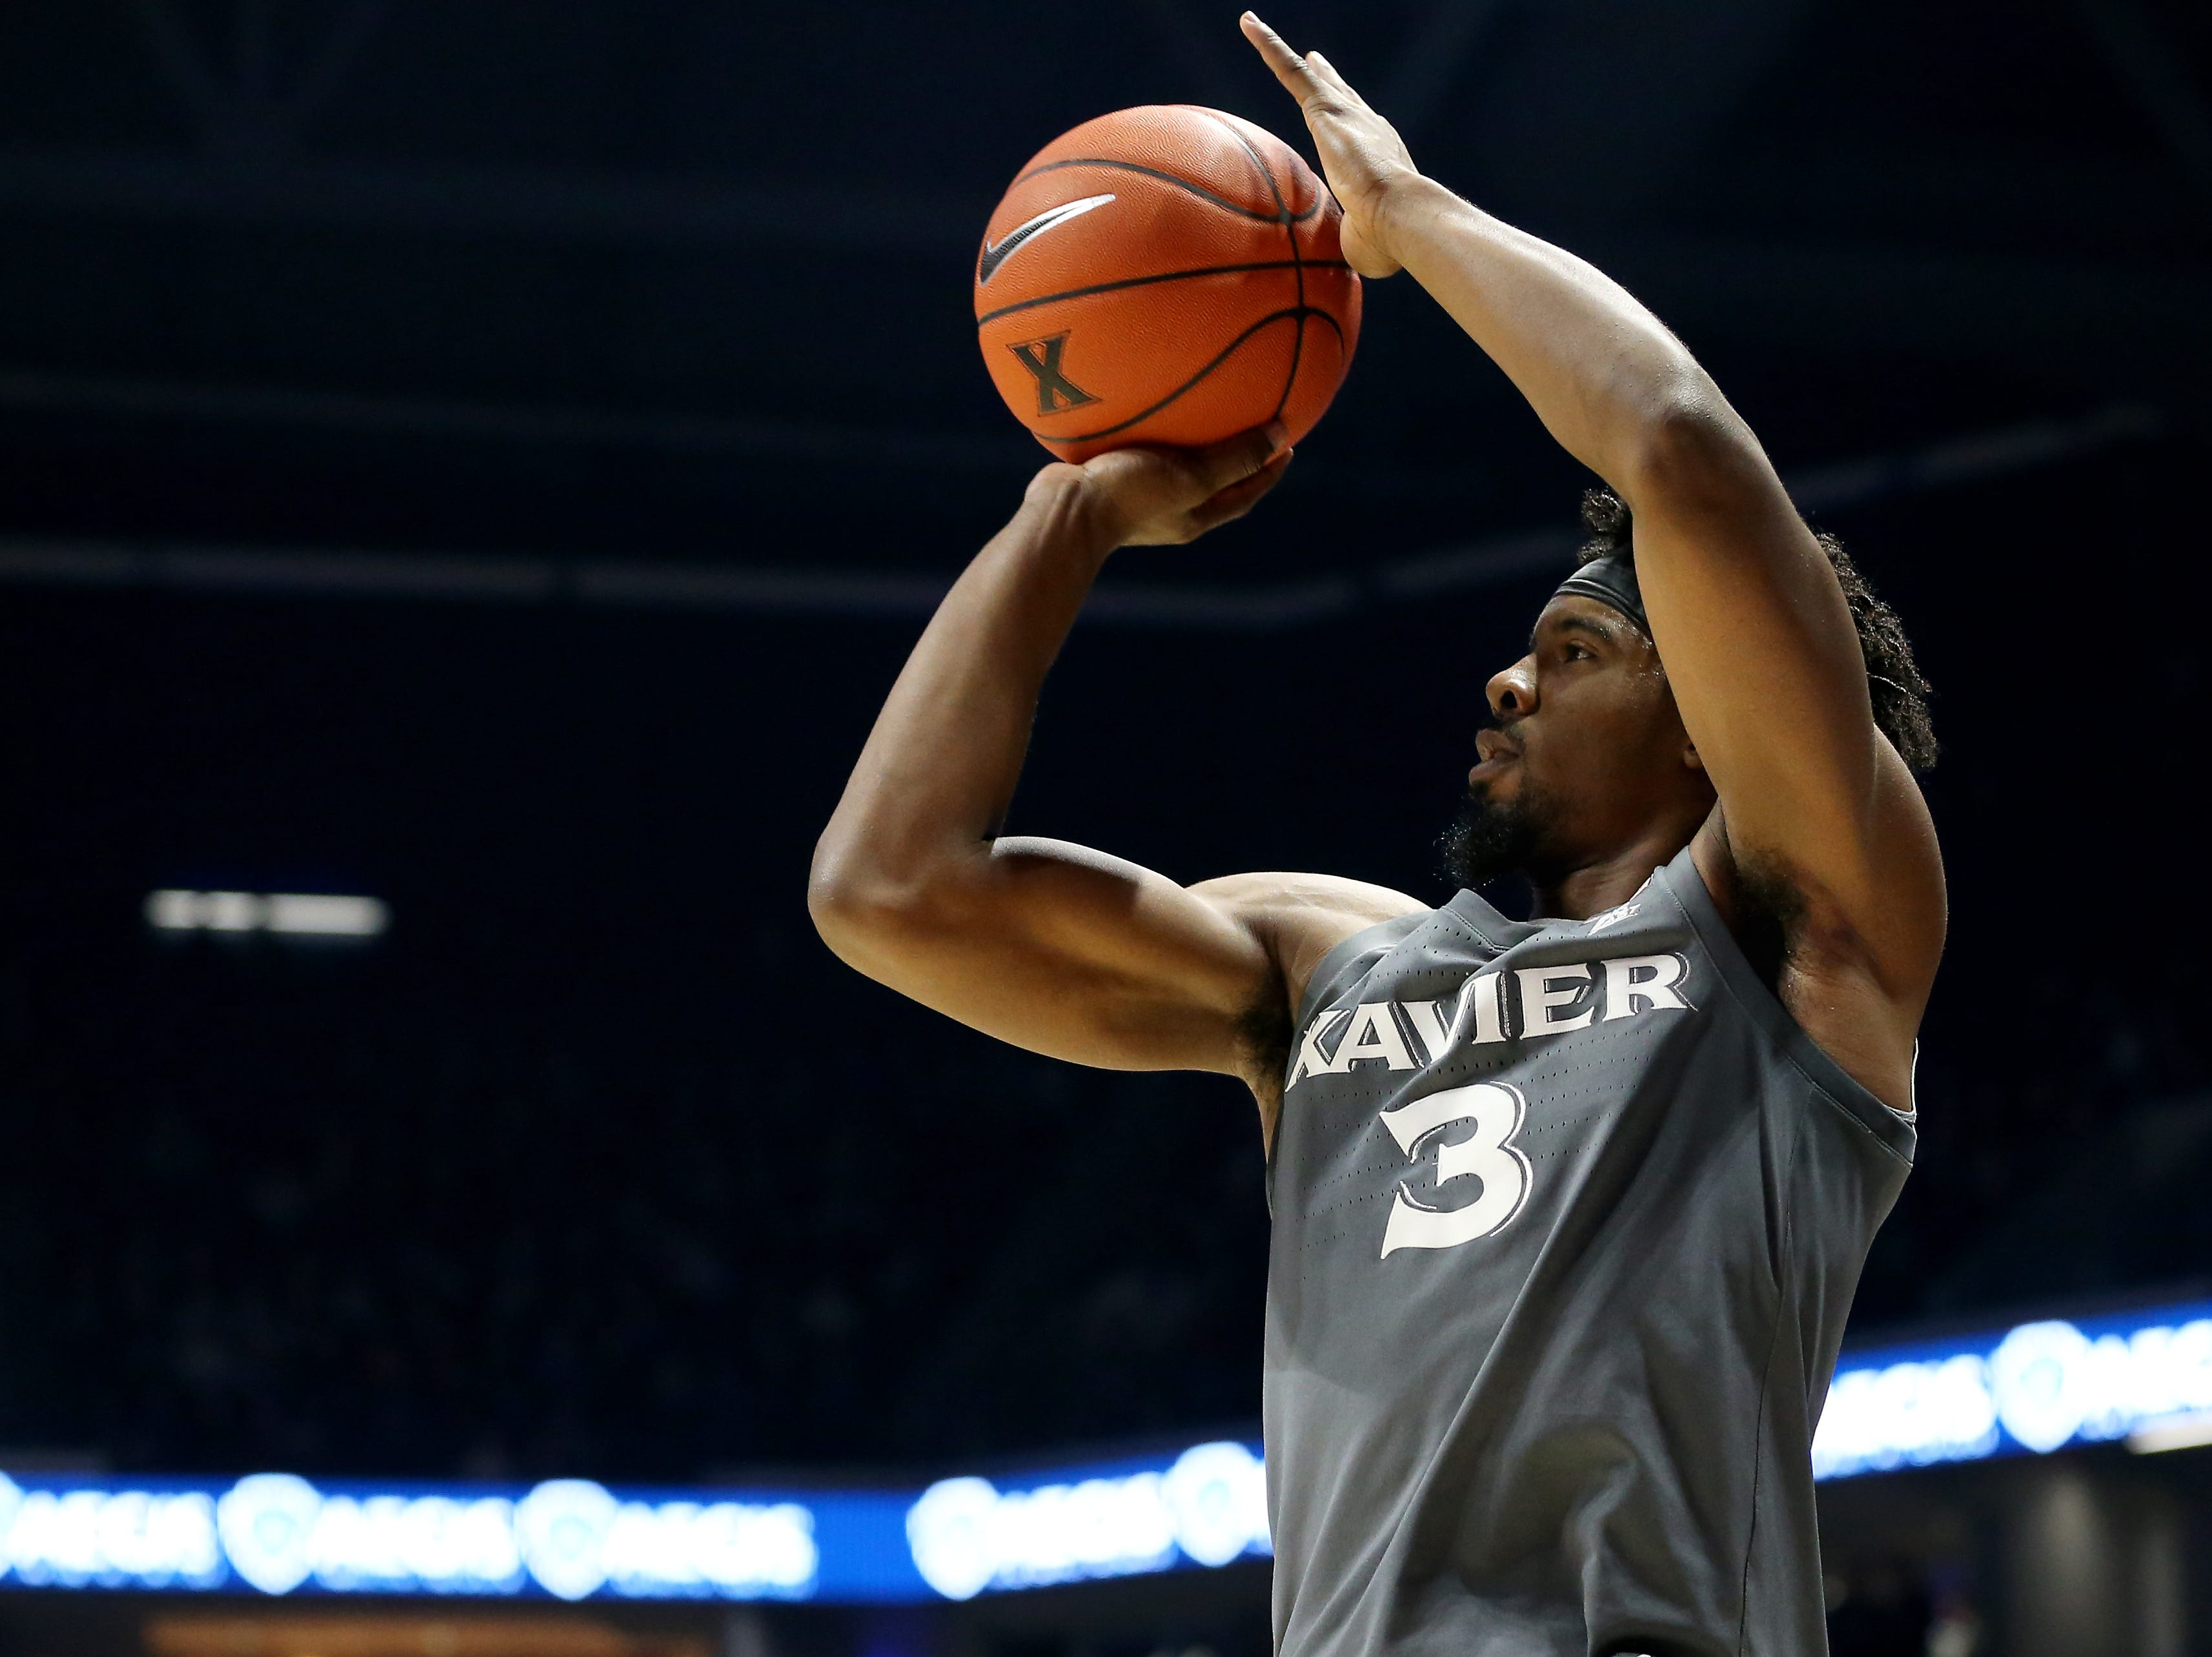 Xavier Musketeers guard Quentin Goodin (3) rises for a shot in the first half of an NCAA college basketball game against the Eastern Kentucky Colonels, Saturday, Dec. 15, 2018, at Cintas Center in Cincinnati, Ohio